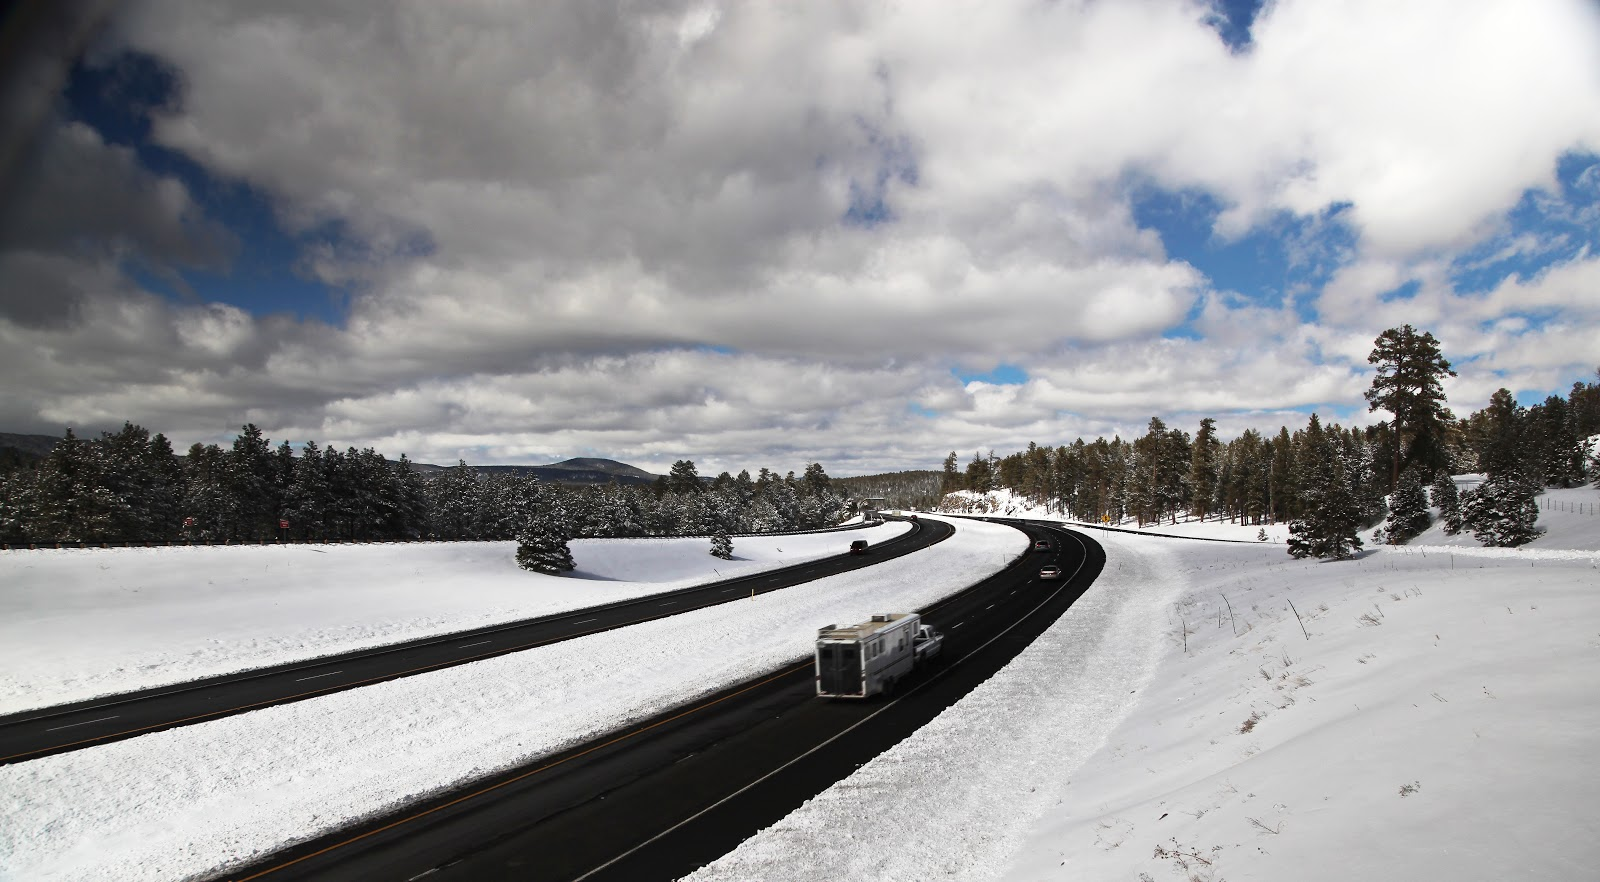 I-40 cuts through the snow outside Flagstaff